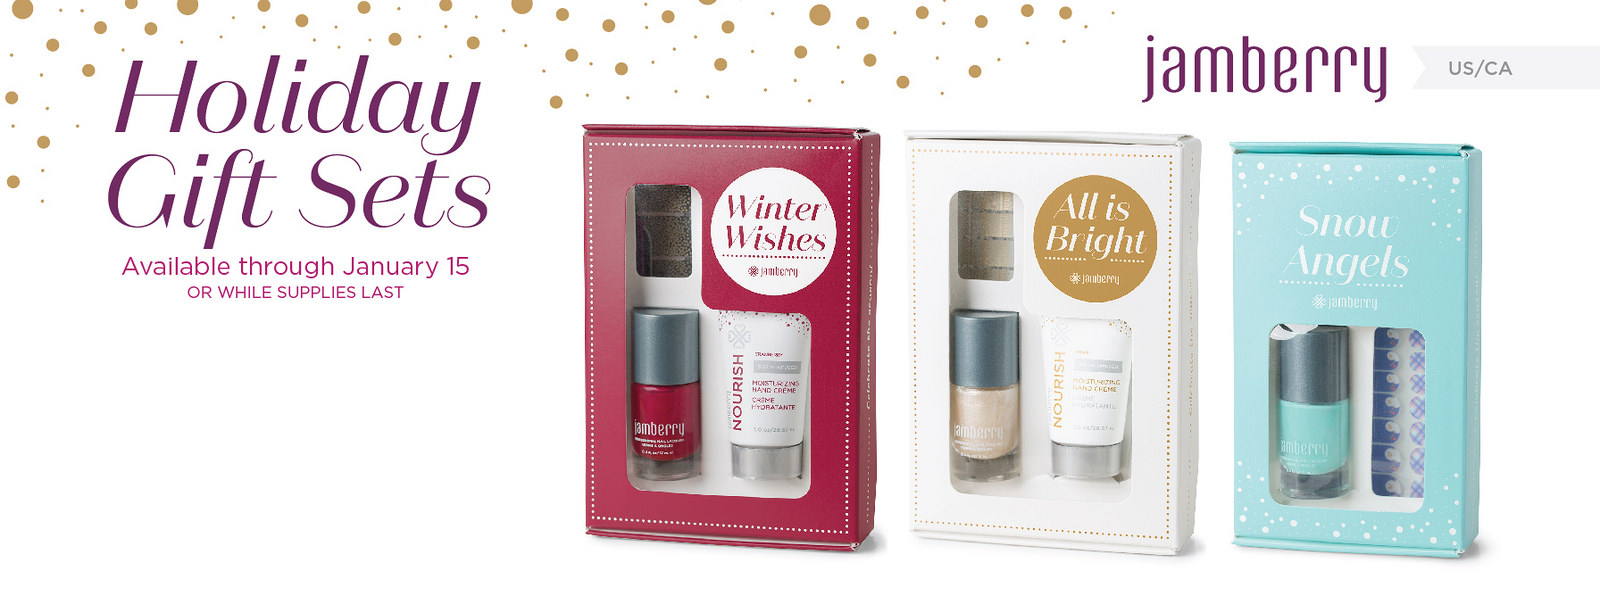 Jamberry Holiday Gift Set Giveaway - Seeing Dandy